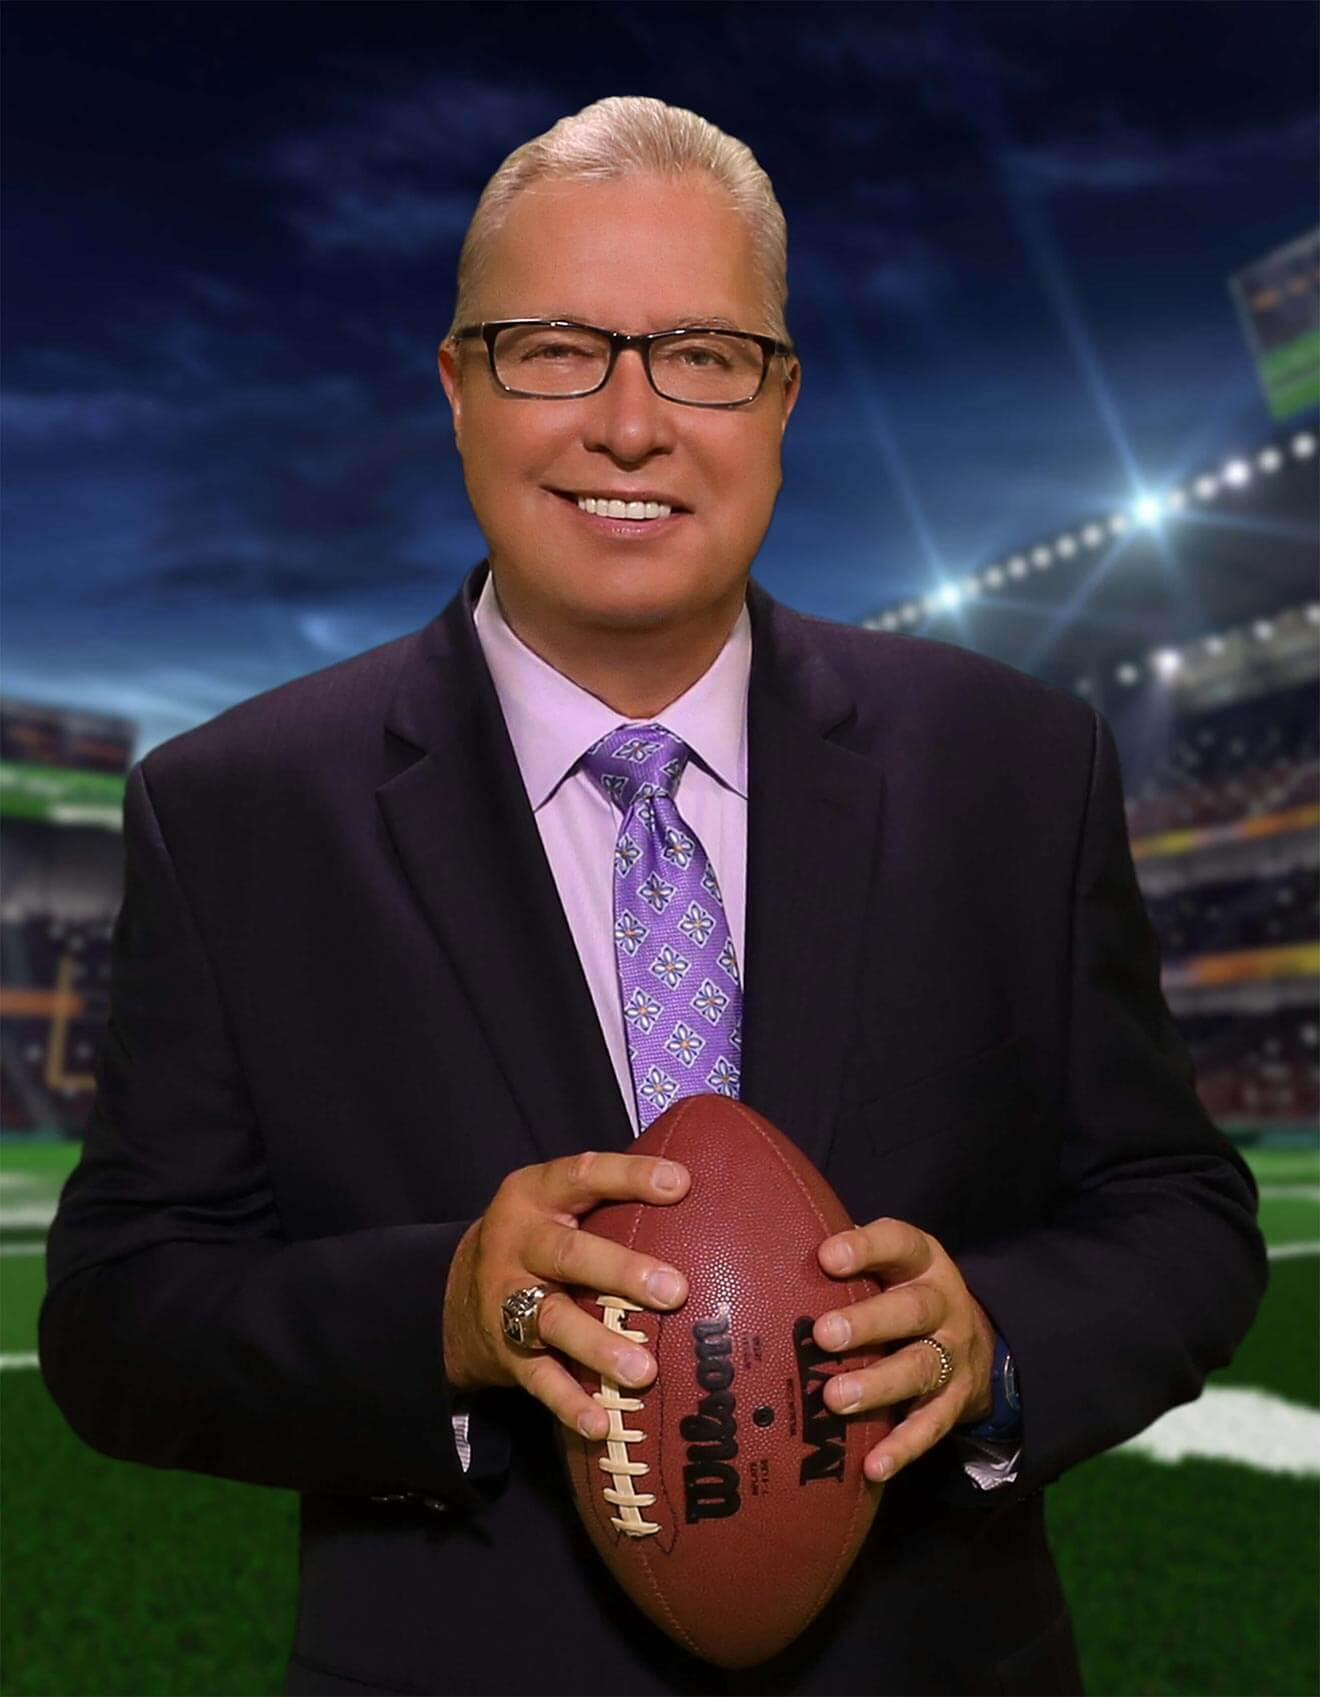 Ron Jaworski, portrait, suit with football, stadium back